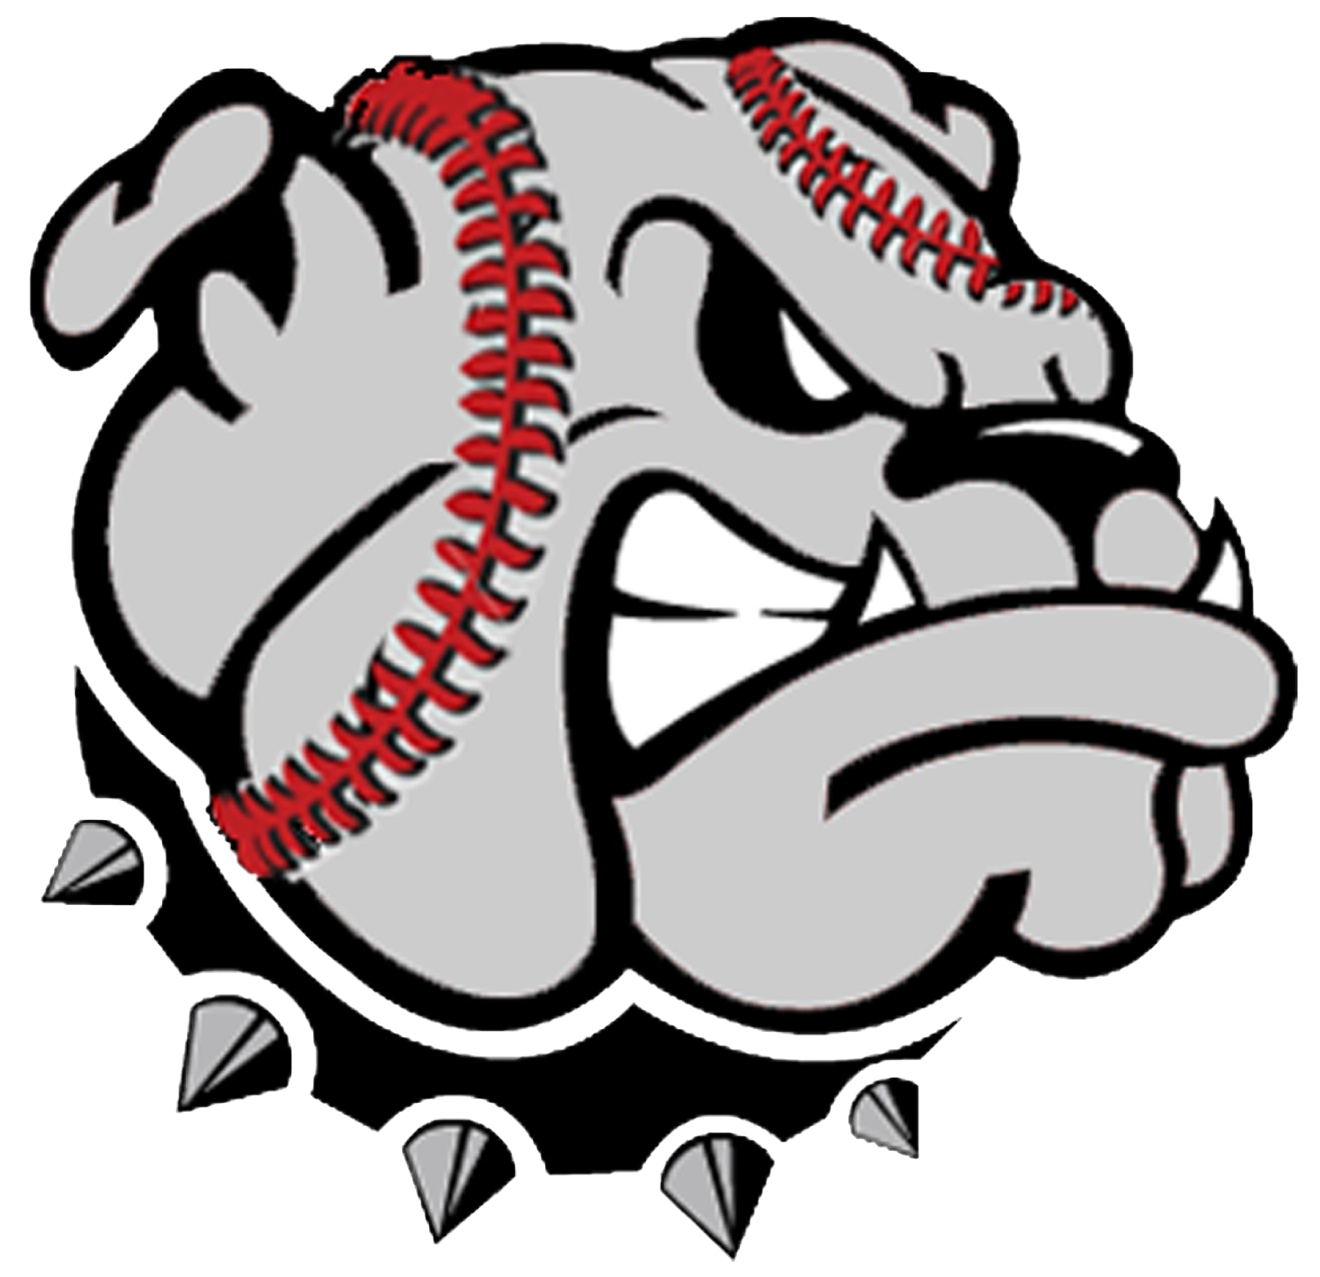 Bulldog baseball clipart clipart free download The University of Baseball - About UB clipart free download